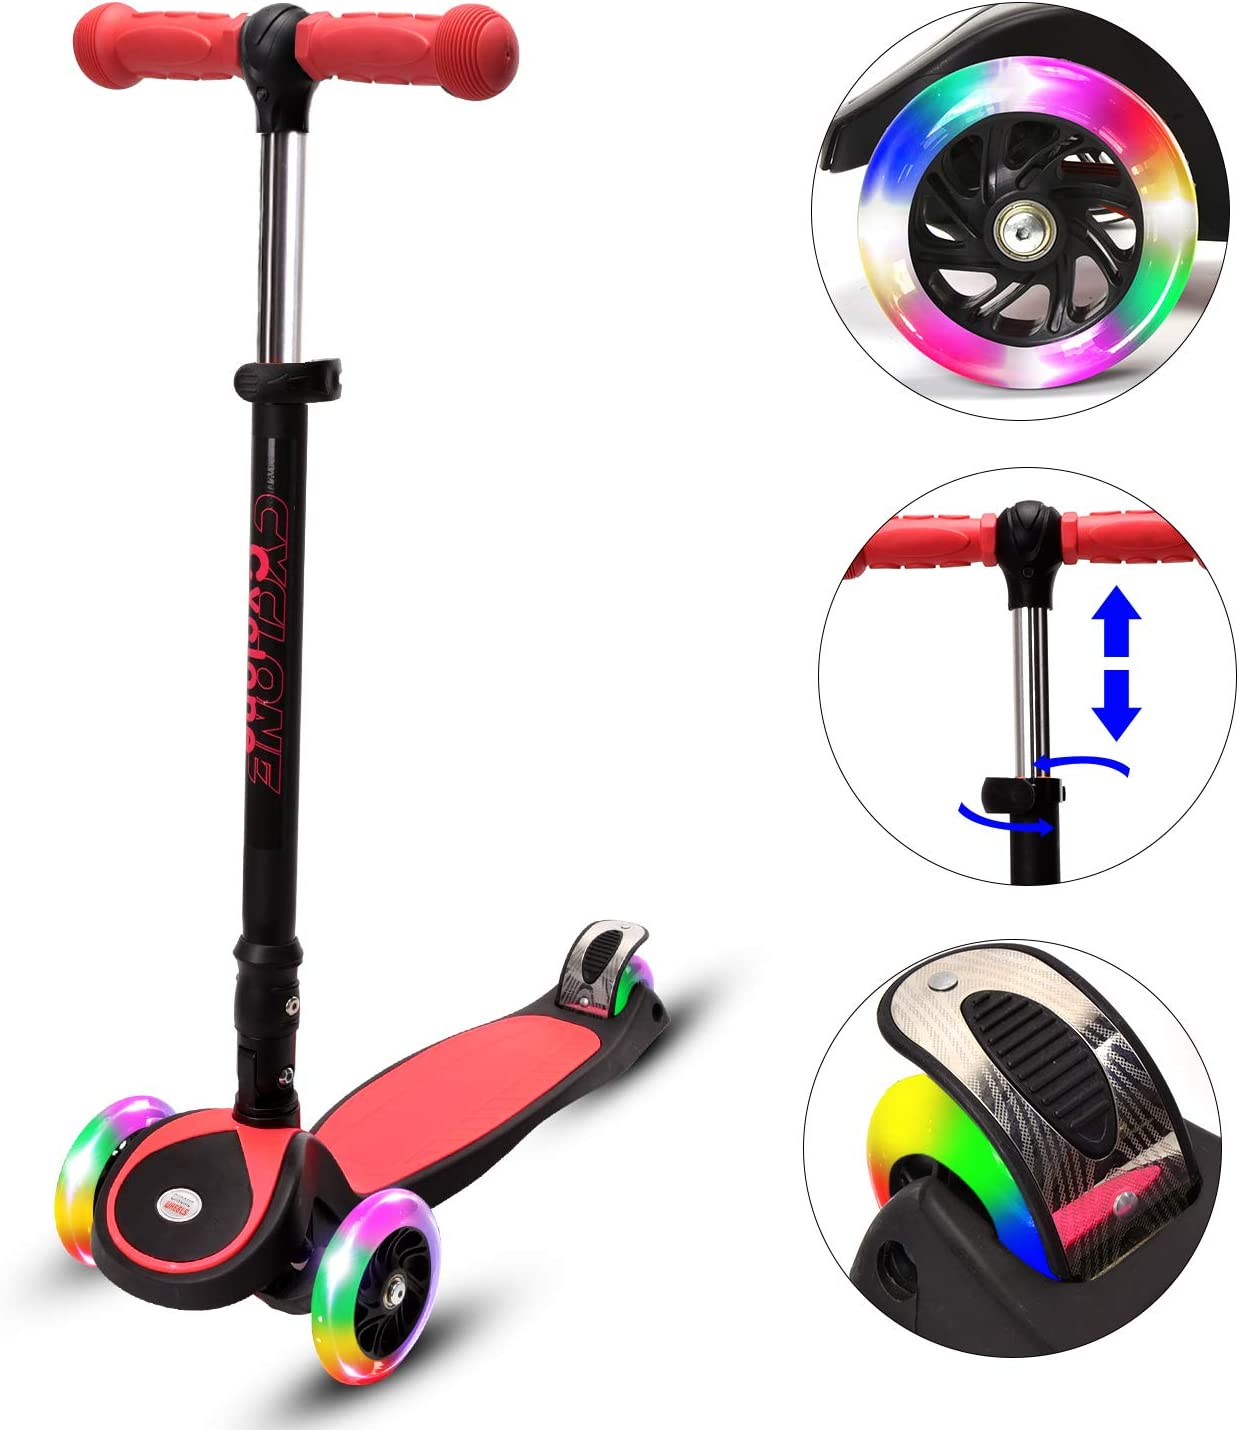 ChromeWheels Kick Scooter for Kids, Glidekick Scooter Lean to Steer with 3 Flash Wheels, 4 Adjustable Height and Extra Wide Brake, Gift for Children, Kids, Boys, Girls